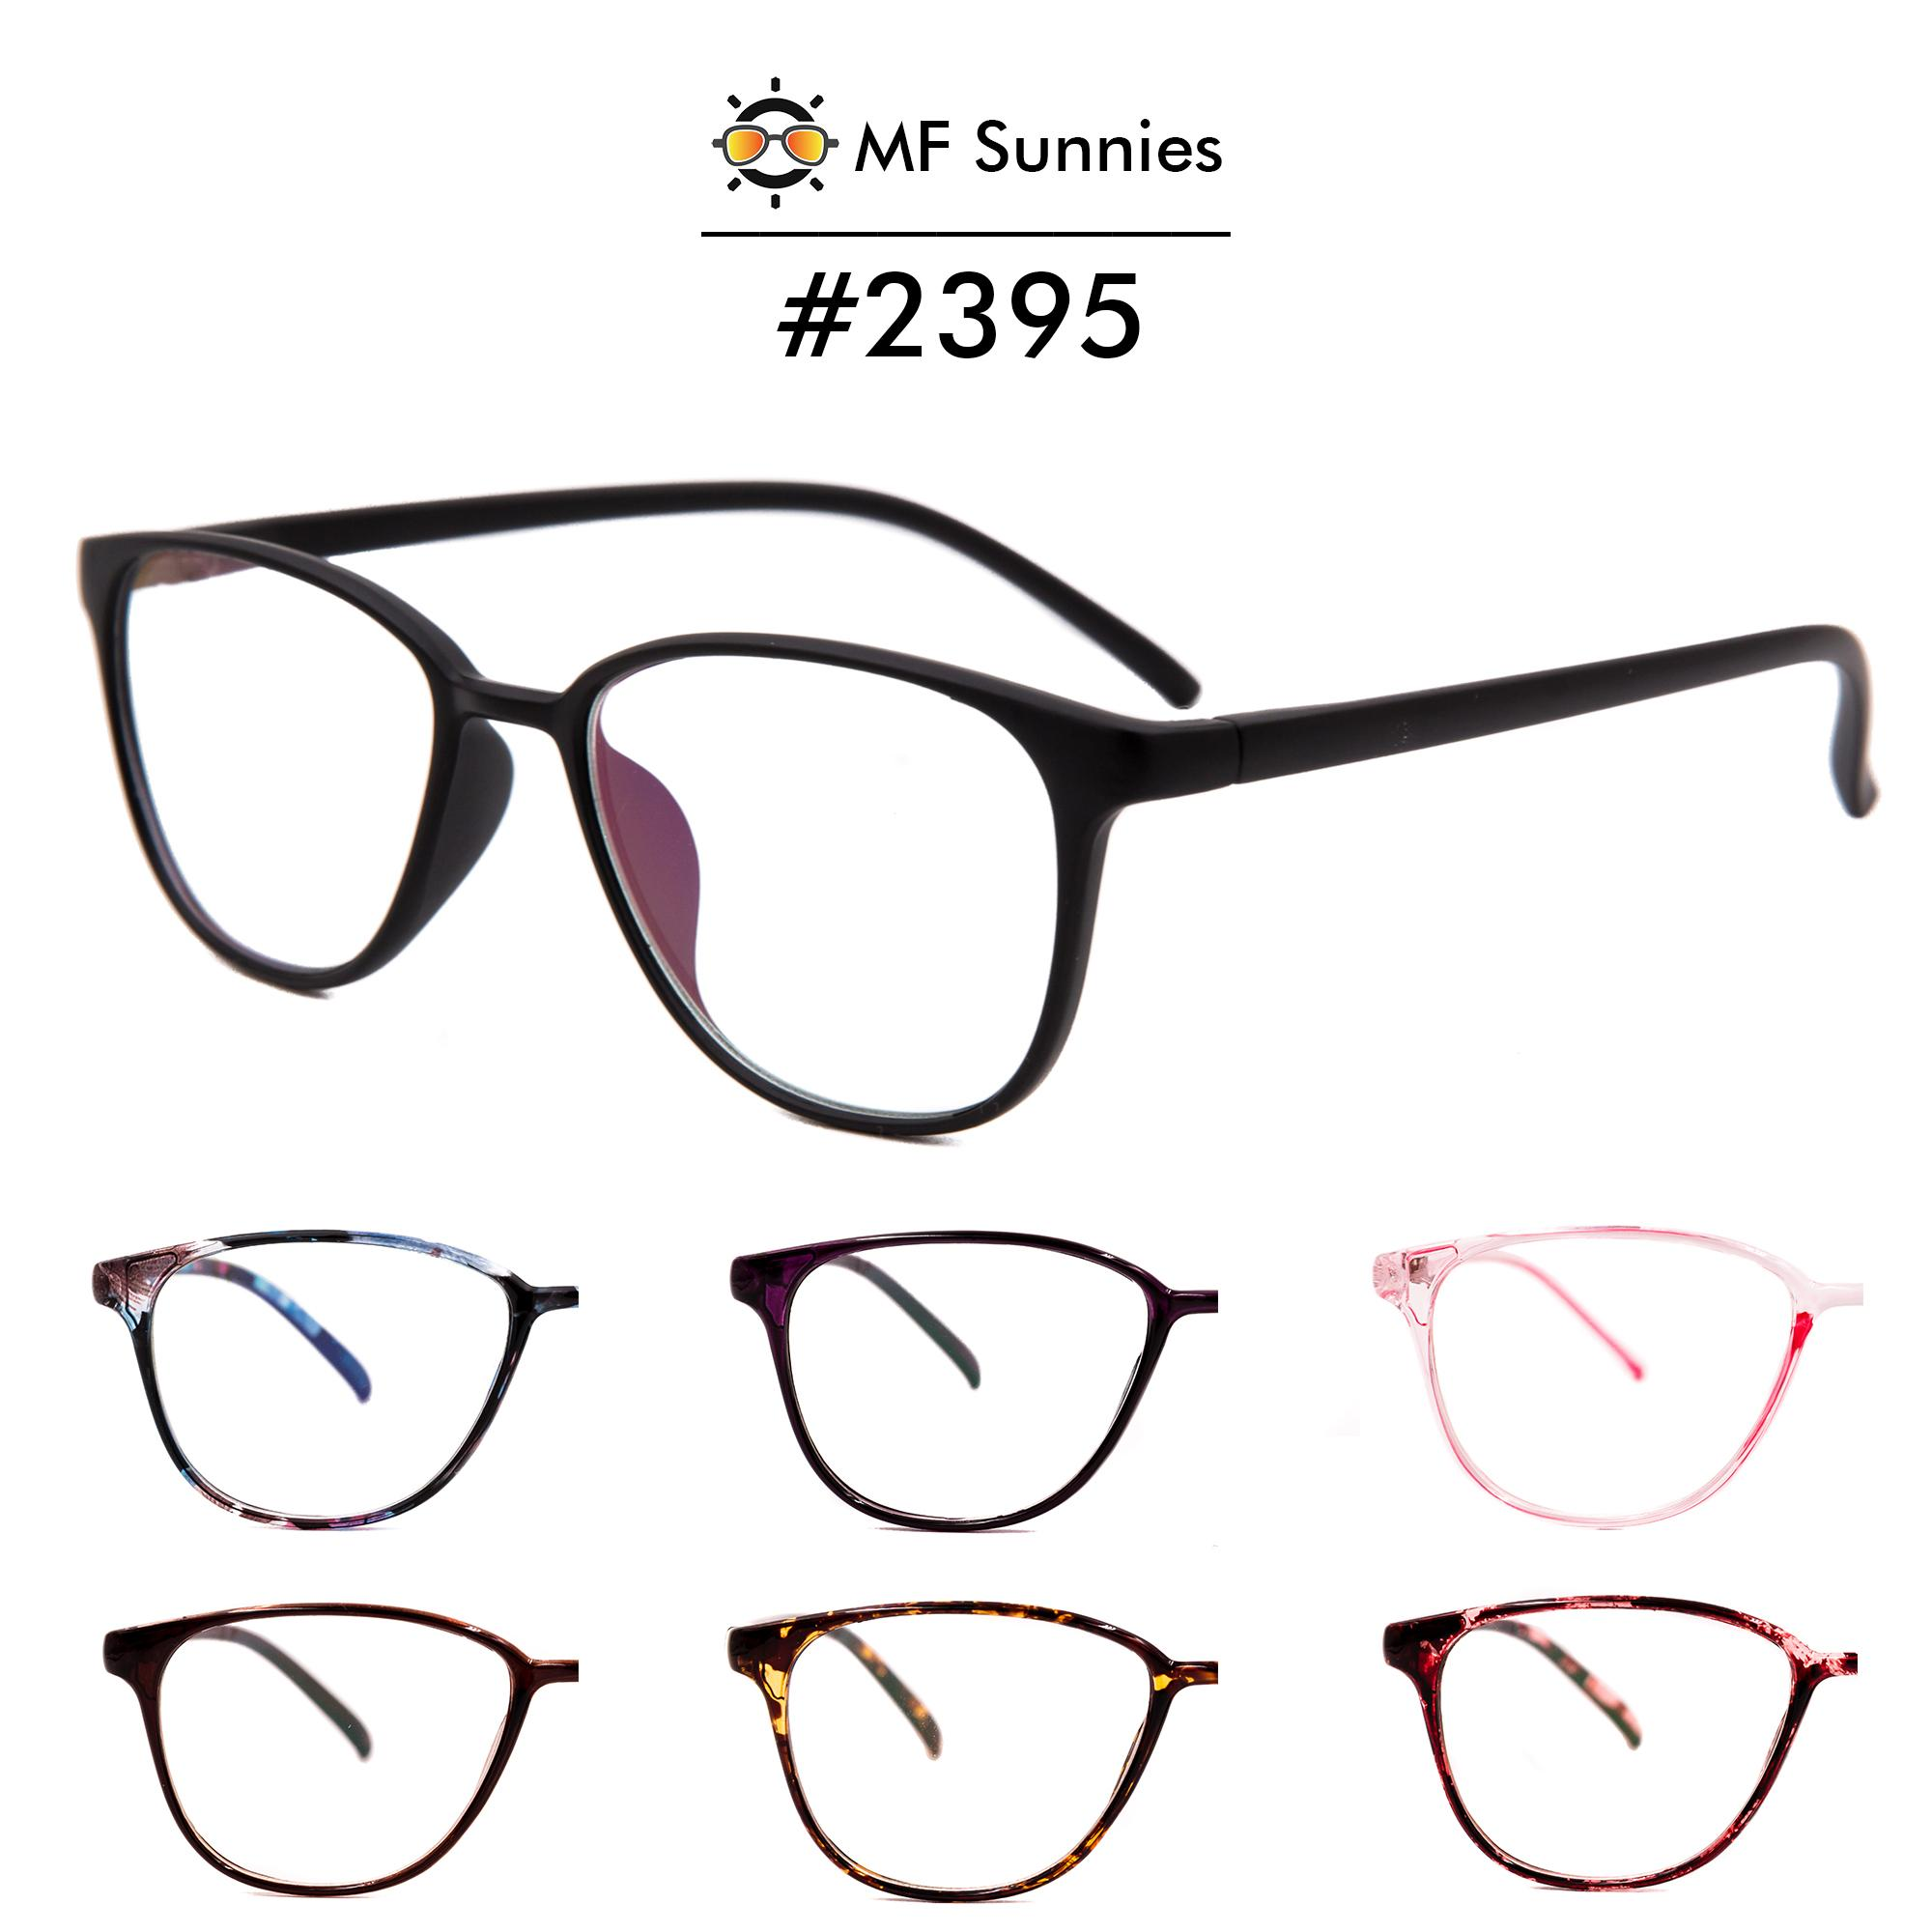 b859752f781 MFSunnies Computer Anti Blue light Radiation Eyewear High quality frame  Premium Acetate material Metal Hinges